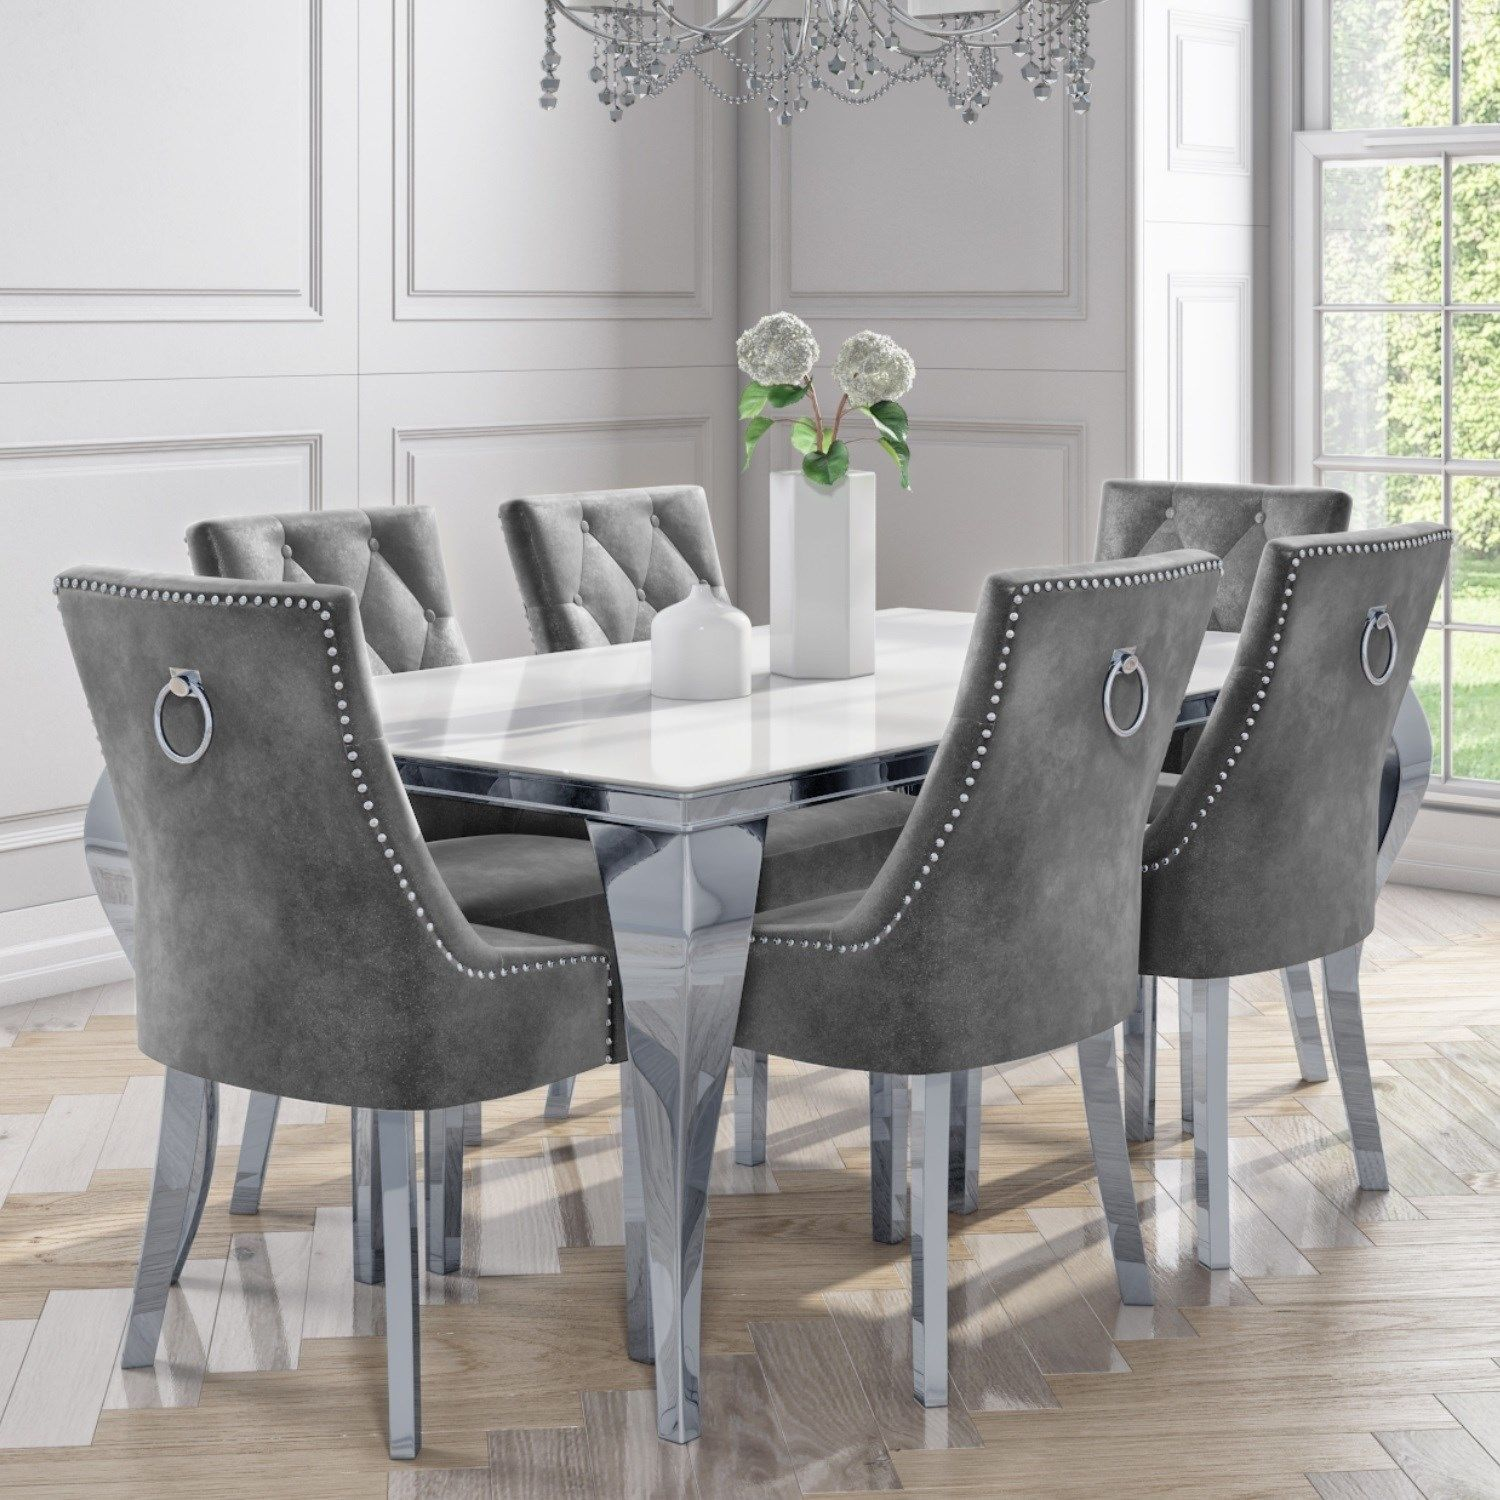 White Mirrored Dining Table with 8 Chairs in Grey Velvet - Louis